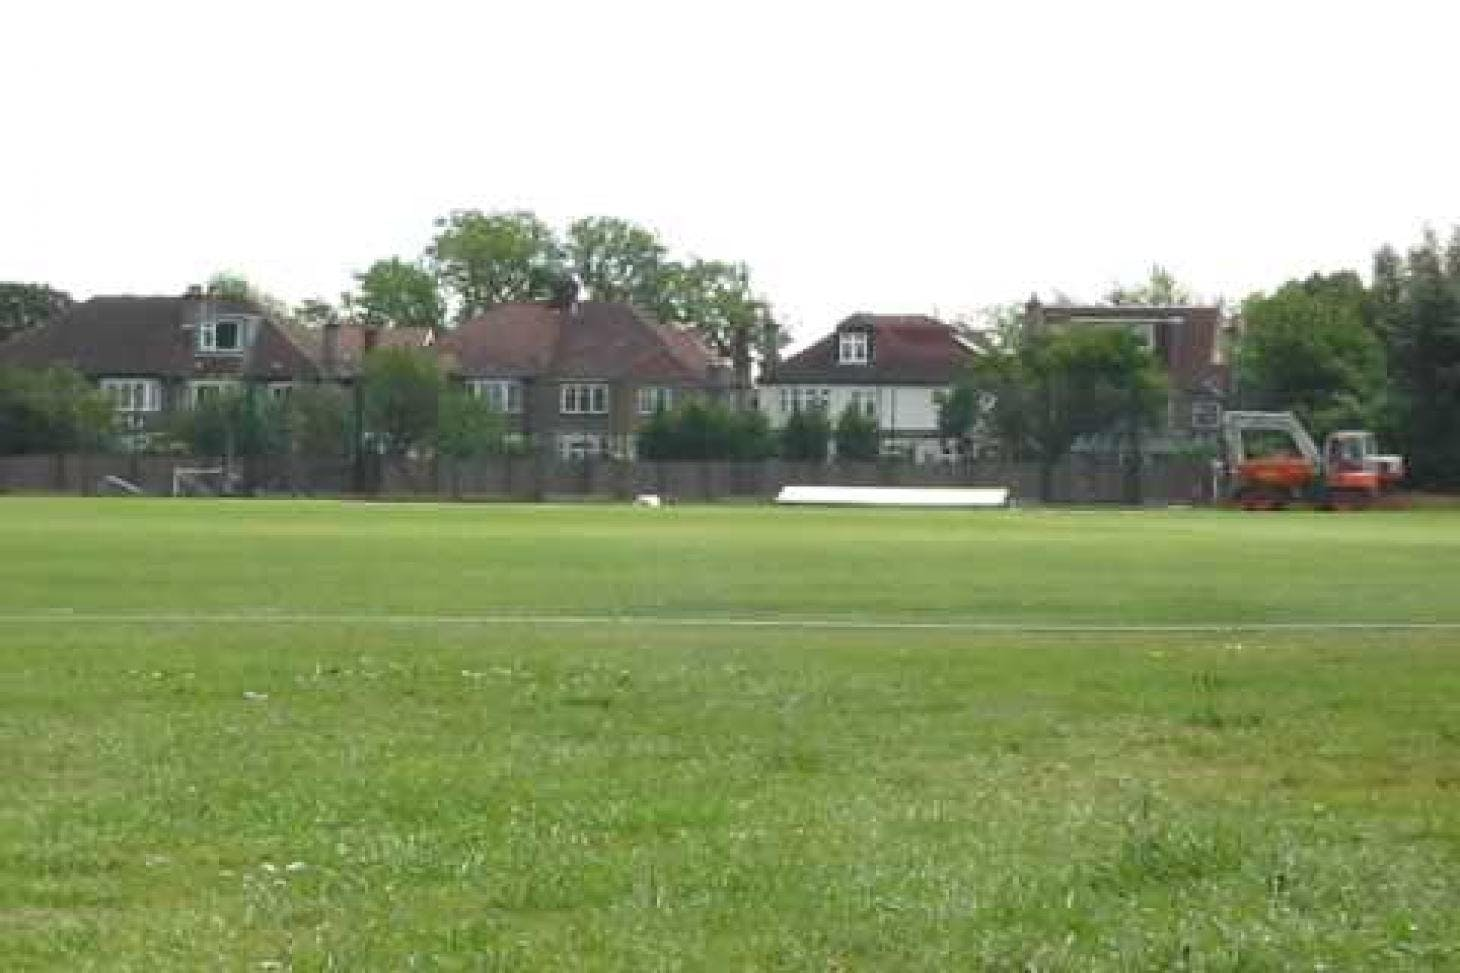 Wilf Slack Memorial Ground Full size | Grass cricket facilities